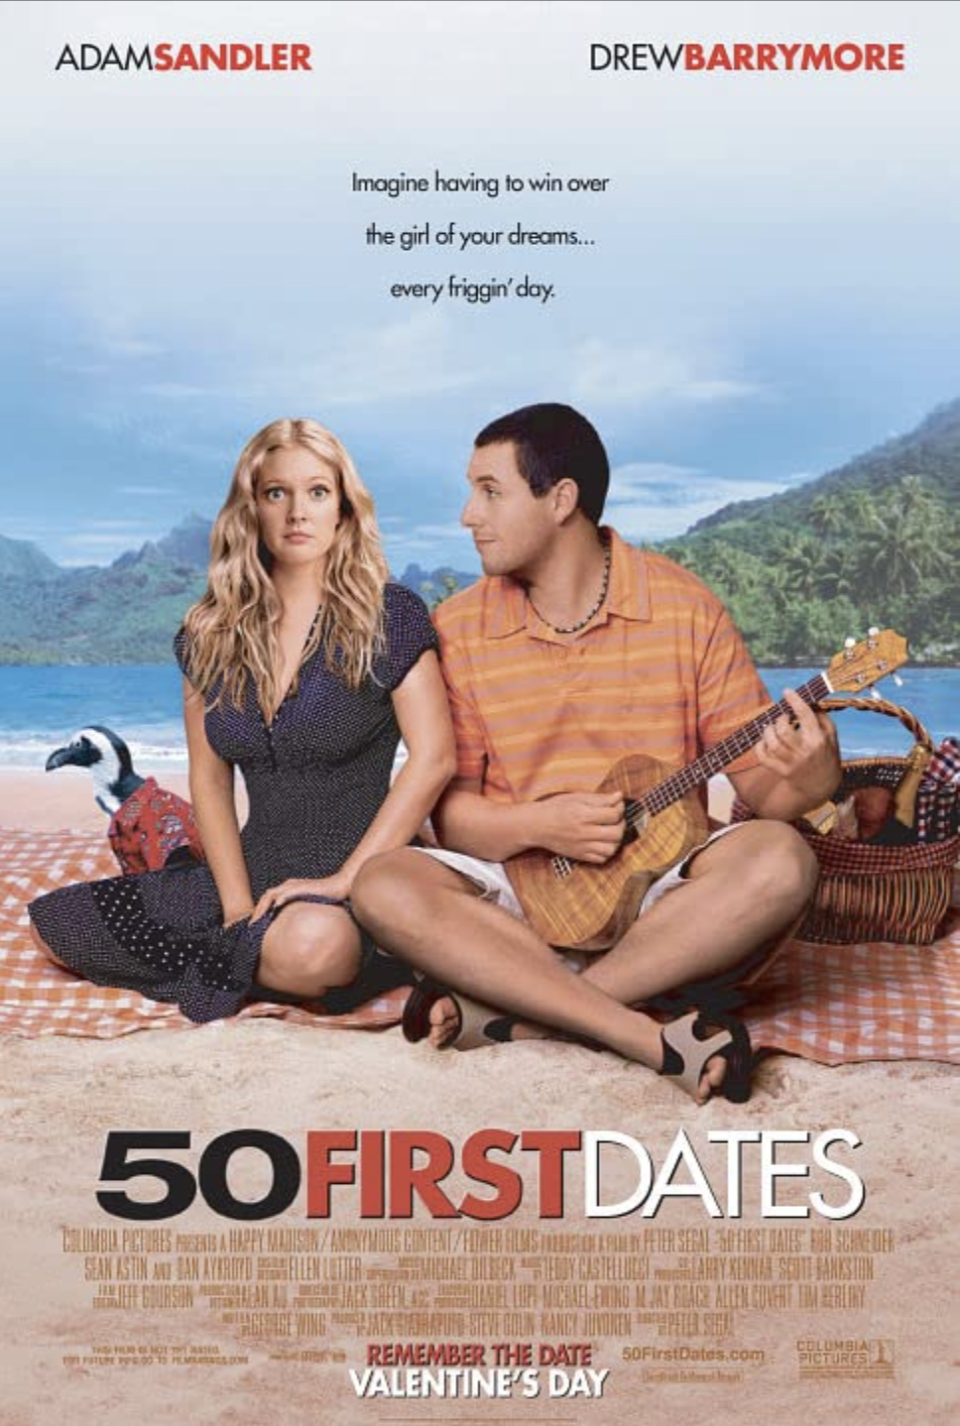 "<p>Drew Barrymore plays a woman whose memory resets every night, so Adam Sandler's character has to be extra creative to woo her in day after day after day. </p><p><a class=""link rapid-noclick-resp"" href=""https://www.netflix.com/search?q=50+first&jbv=60033311"" rel=""nofollow noopener"" target=""_blank"" data-ylk=""slk:STREAM NOW"">STREAM NOW</a></p>"